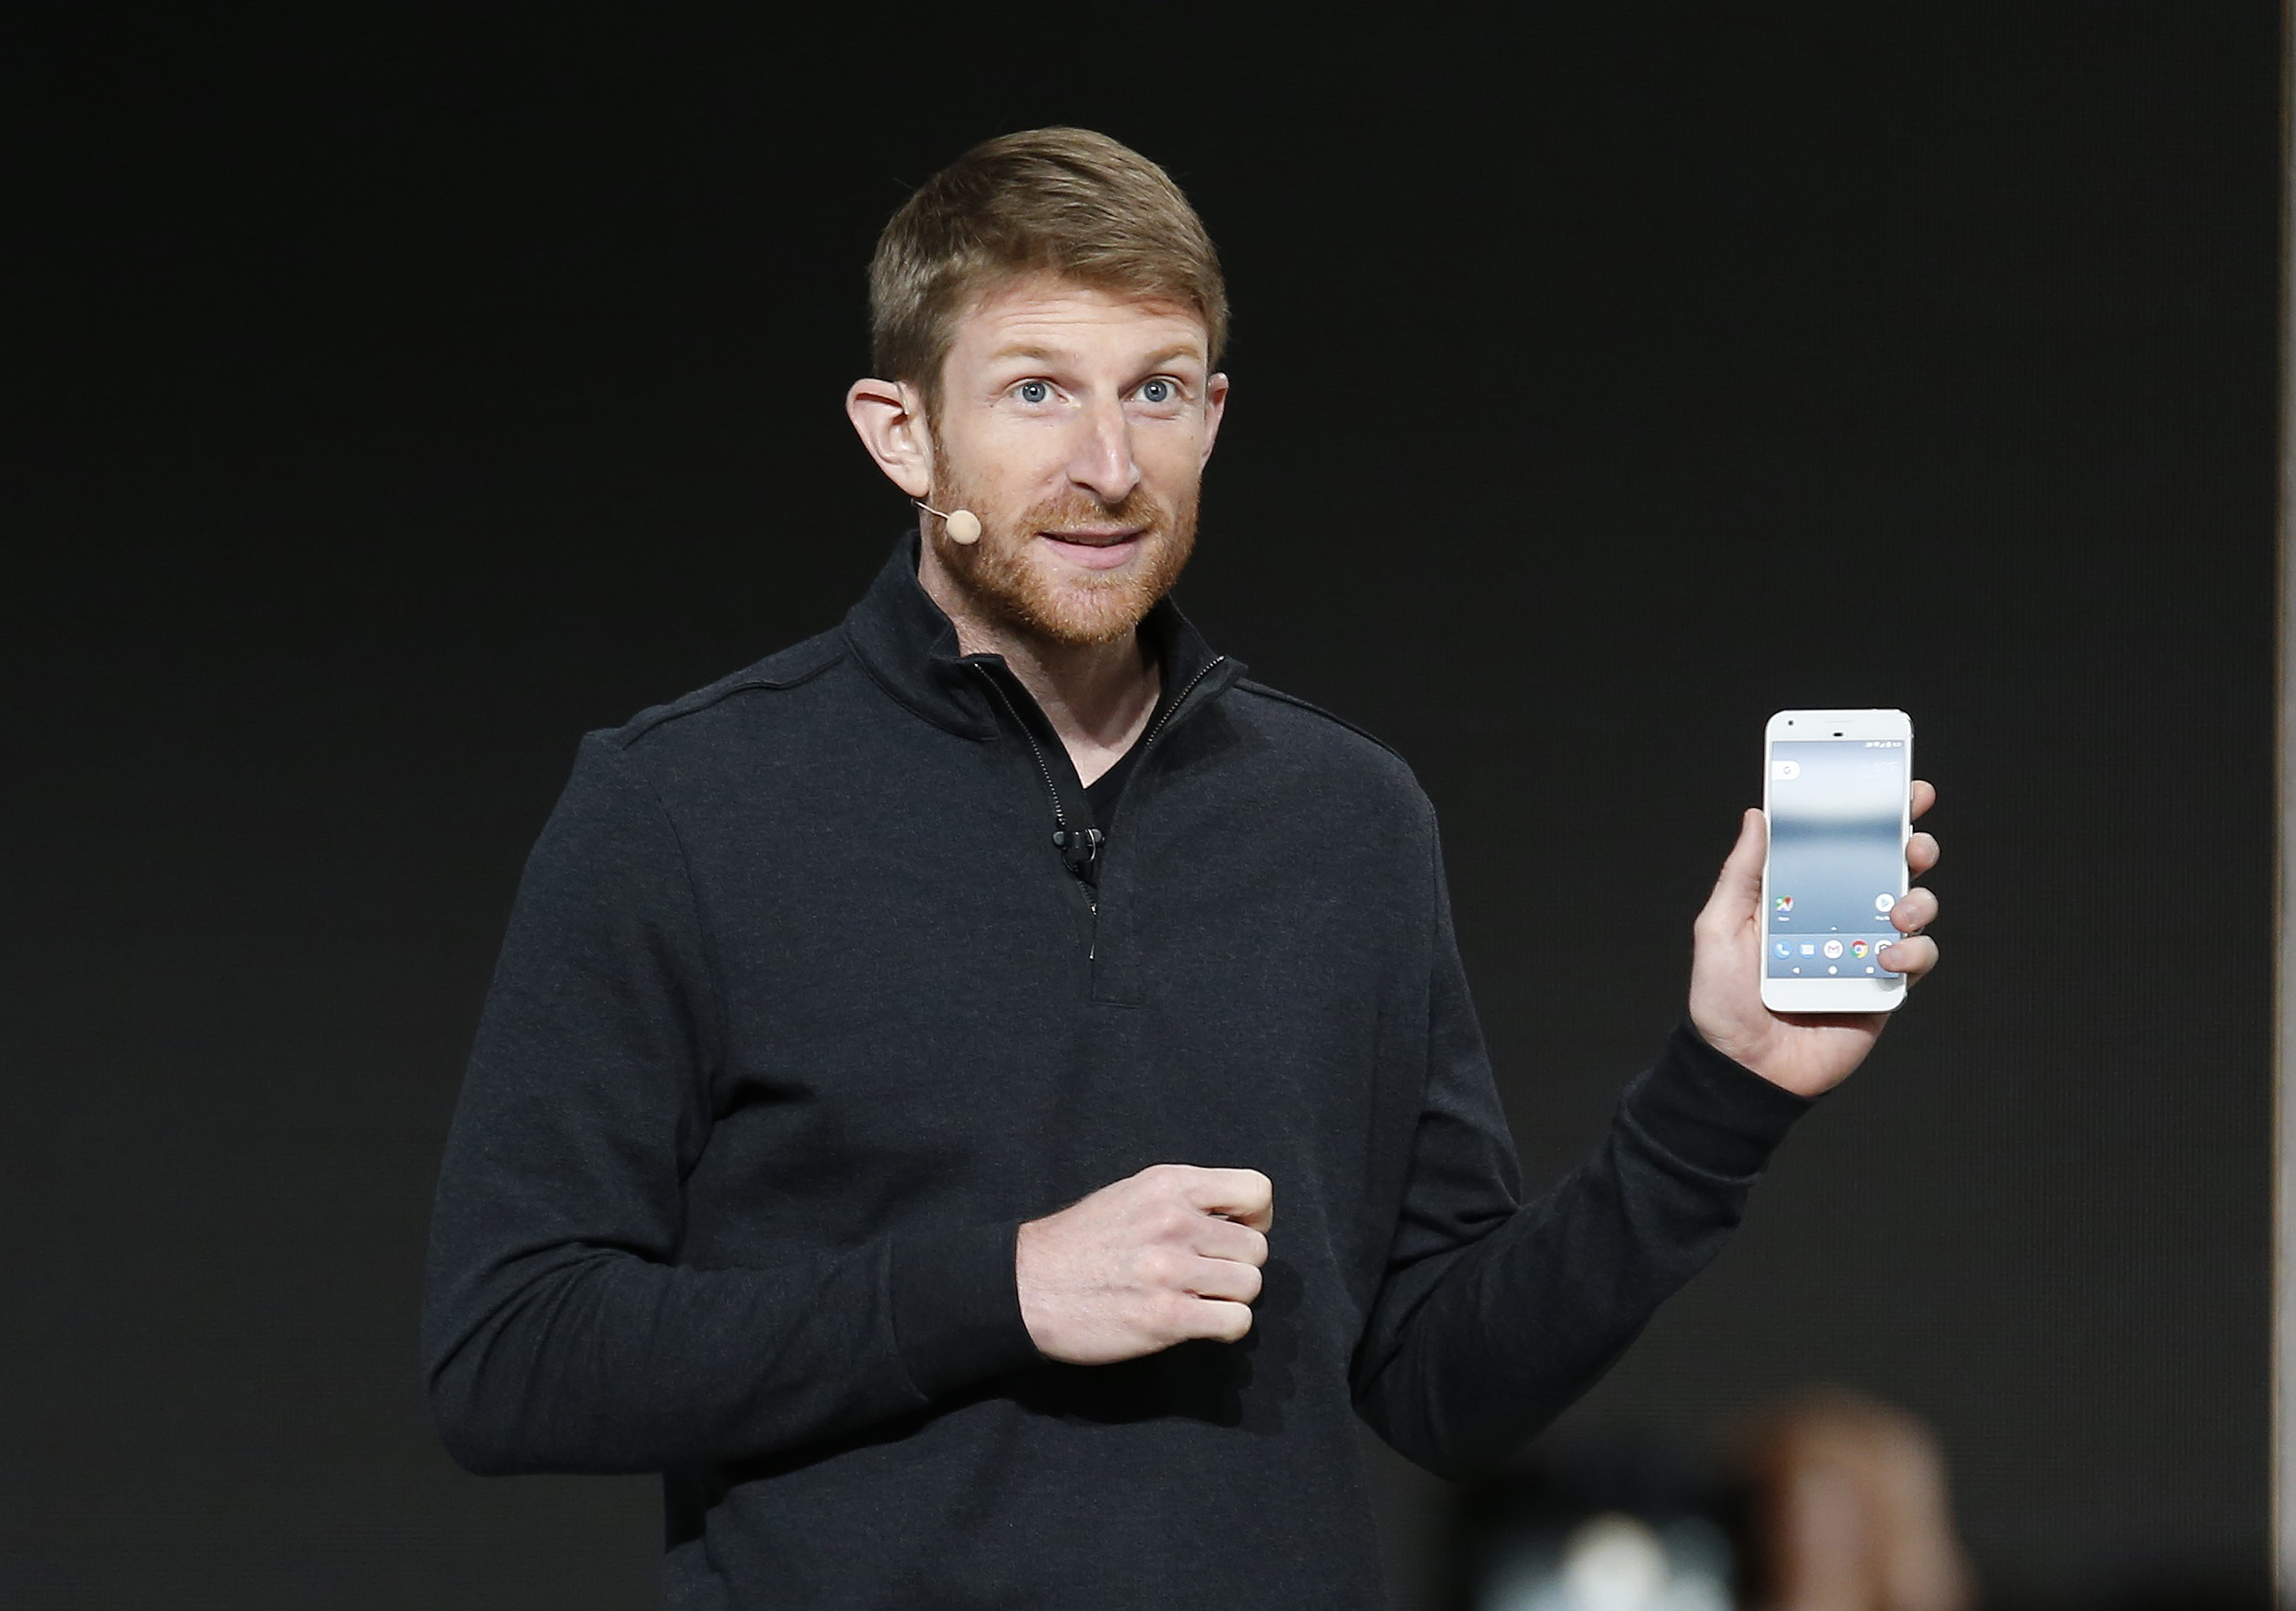 Brian Rakowski speaks about the Pixel phone, during the presentation of new Google hardware in San Francisco